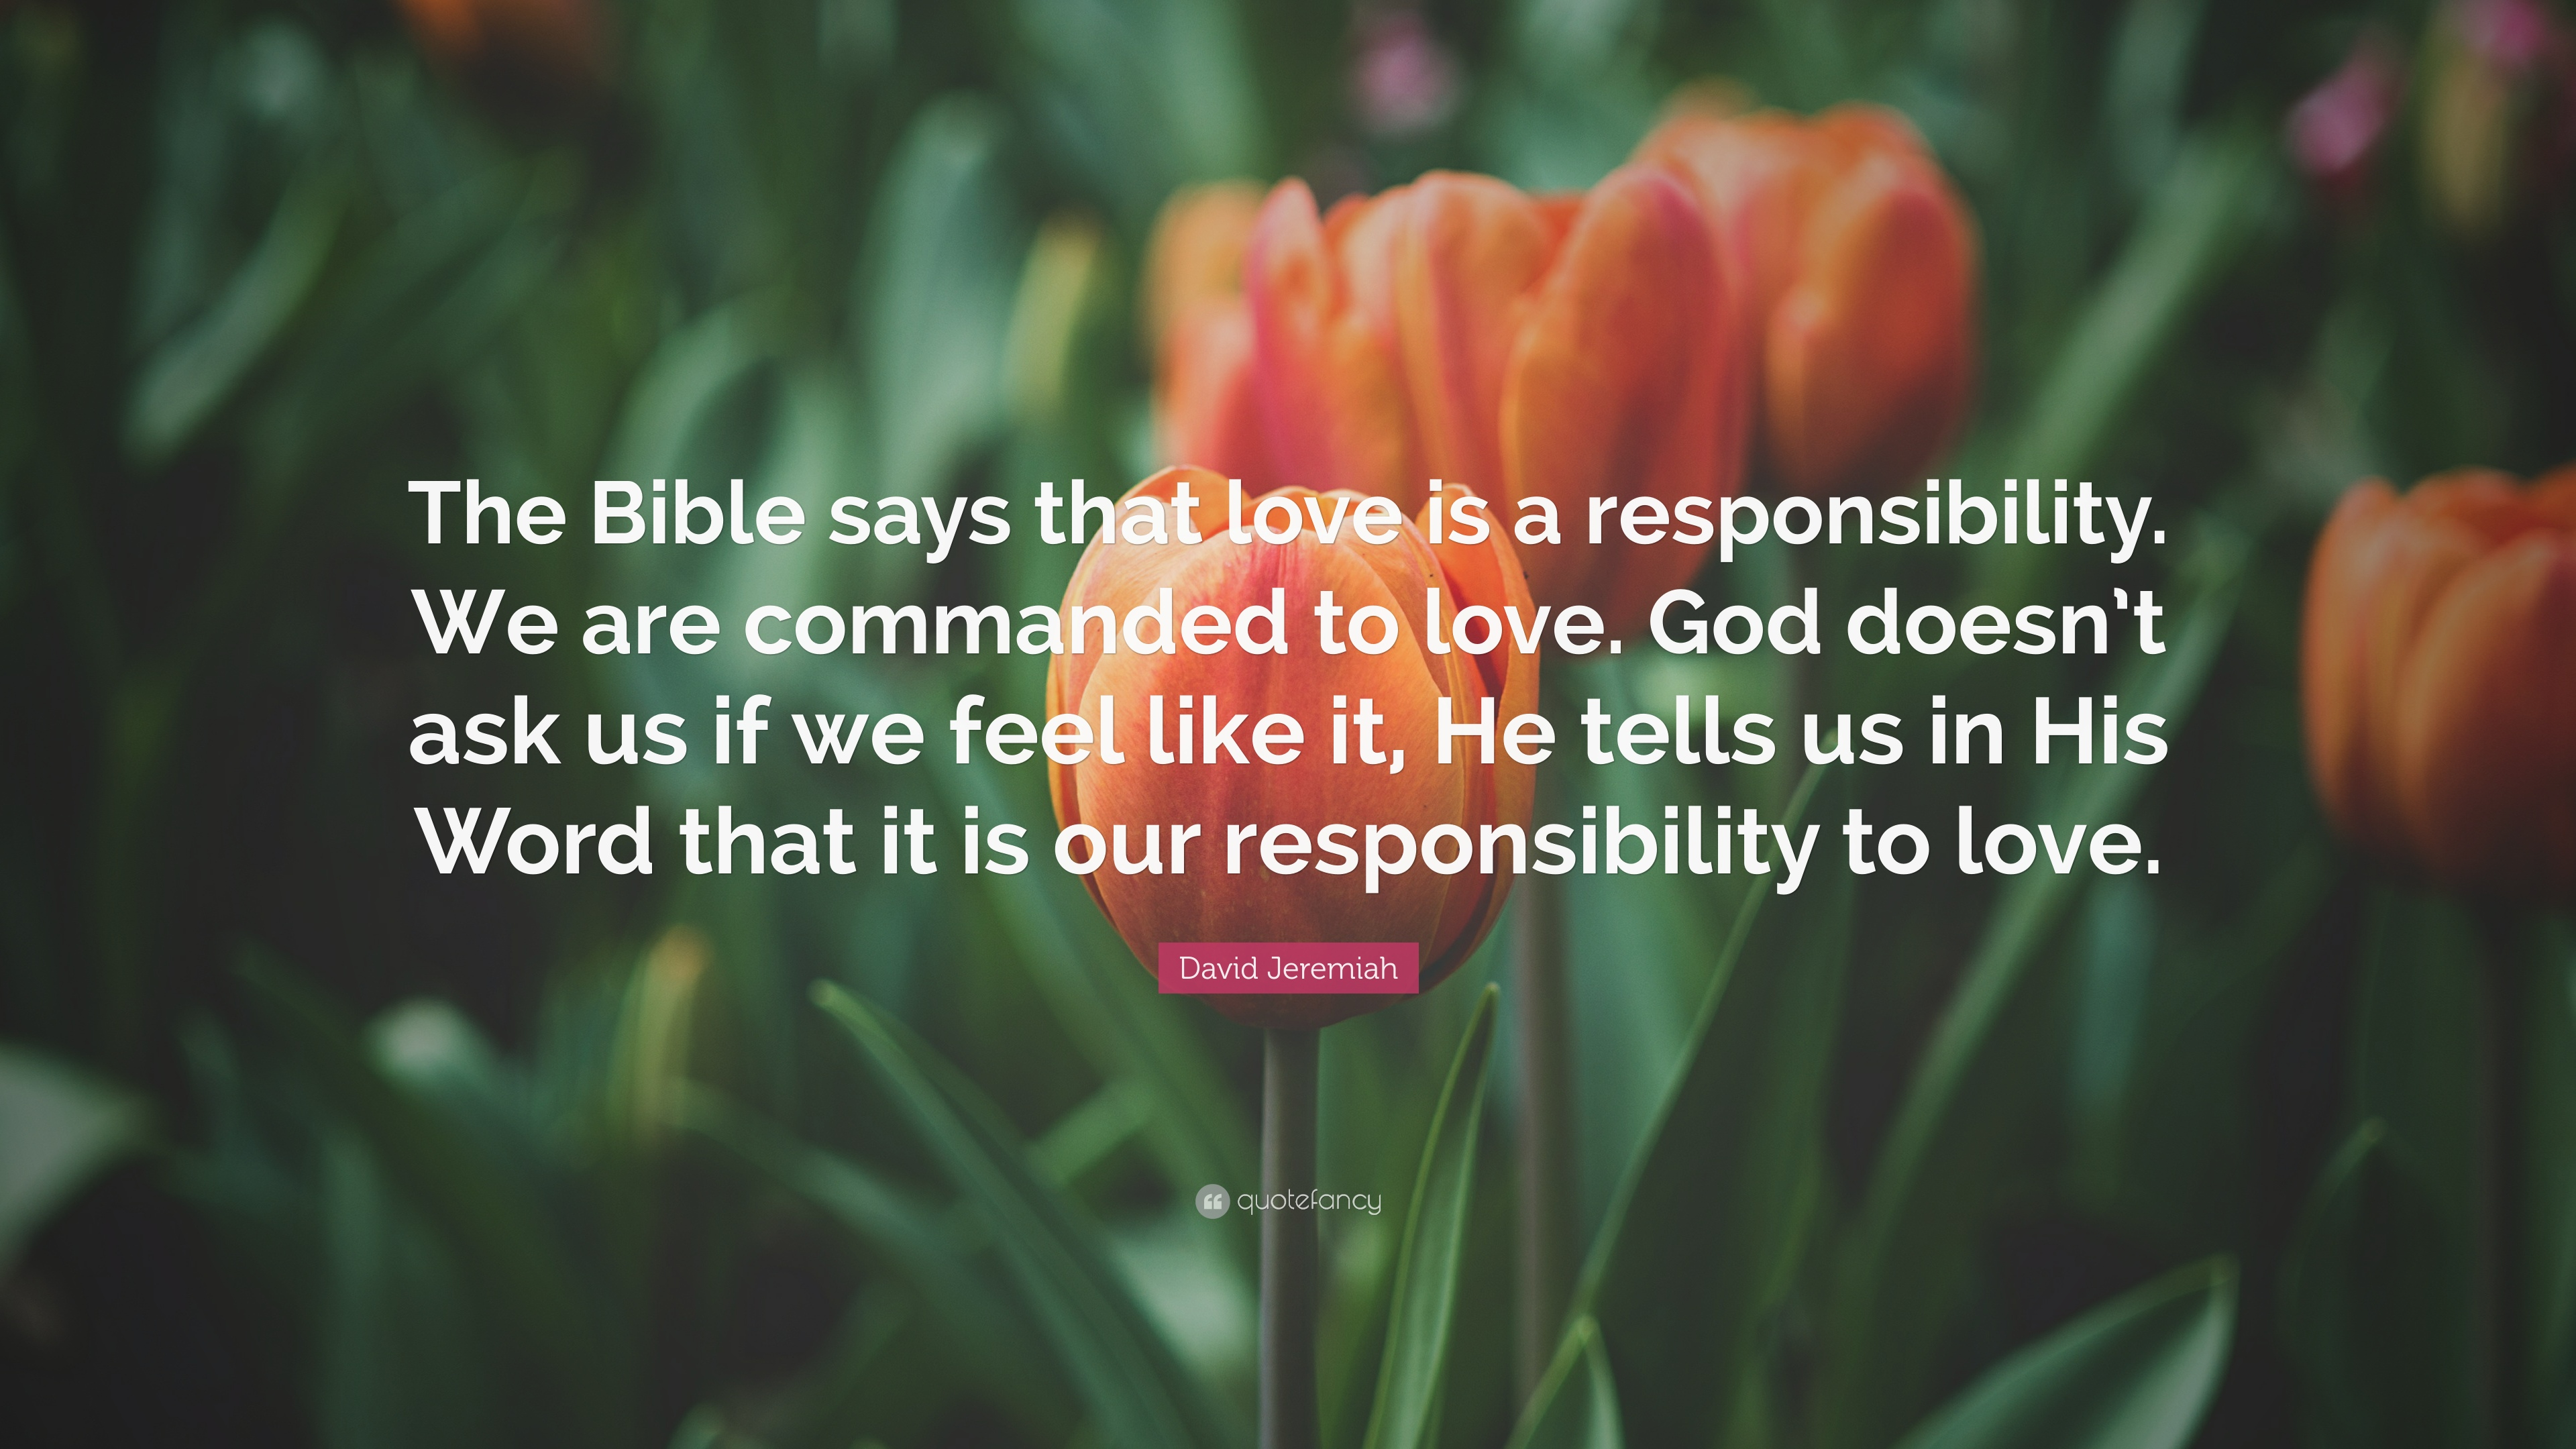 Inspirational Quotes On Life Challenges Wallpapers David Jeremiah Quote The Bible Says That Love Is A